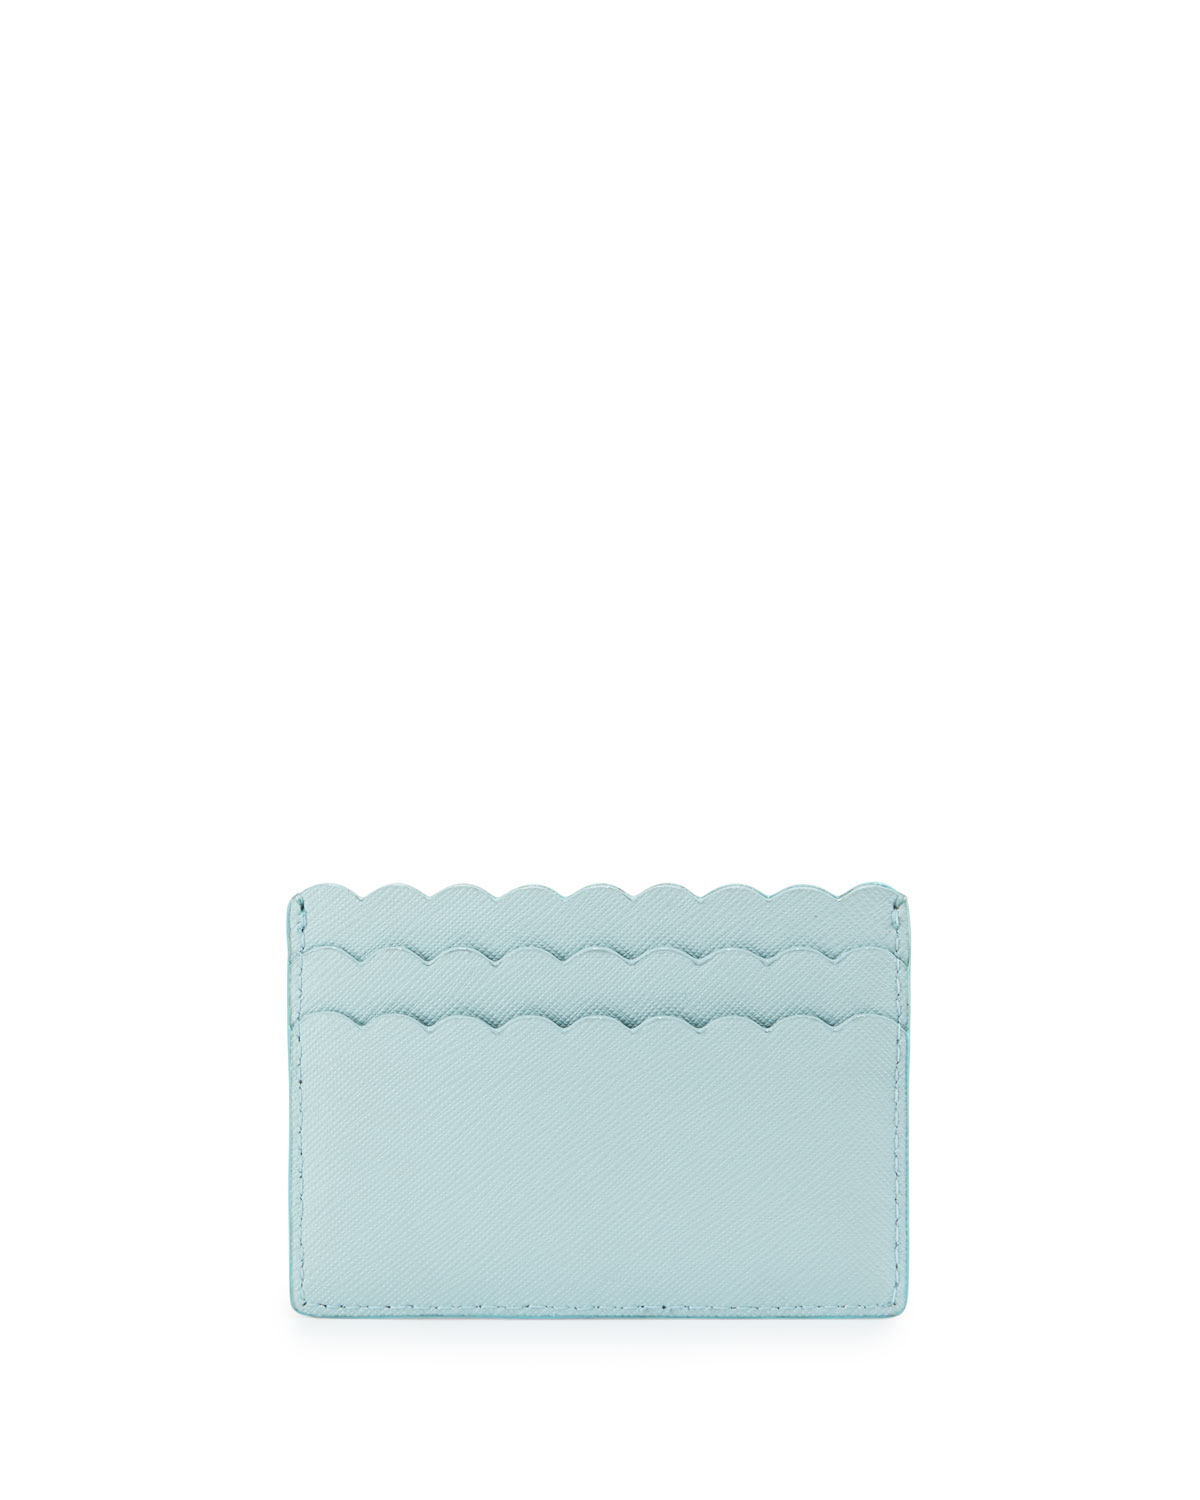 info for 0366f 426ab kate spade new york Blue Cape Drive Card Holder